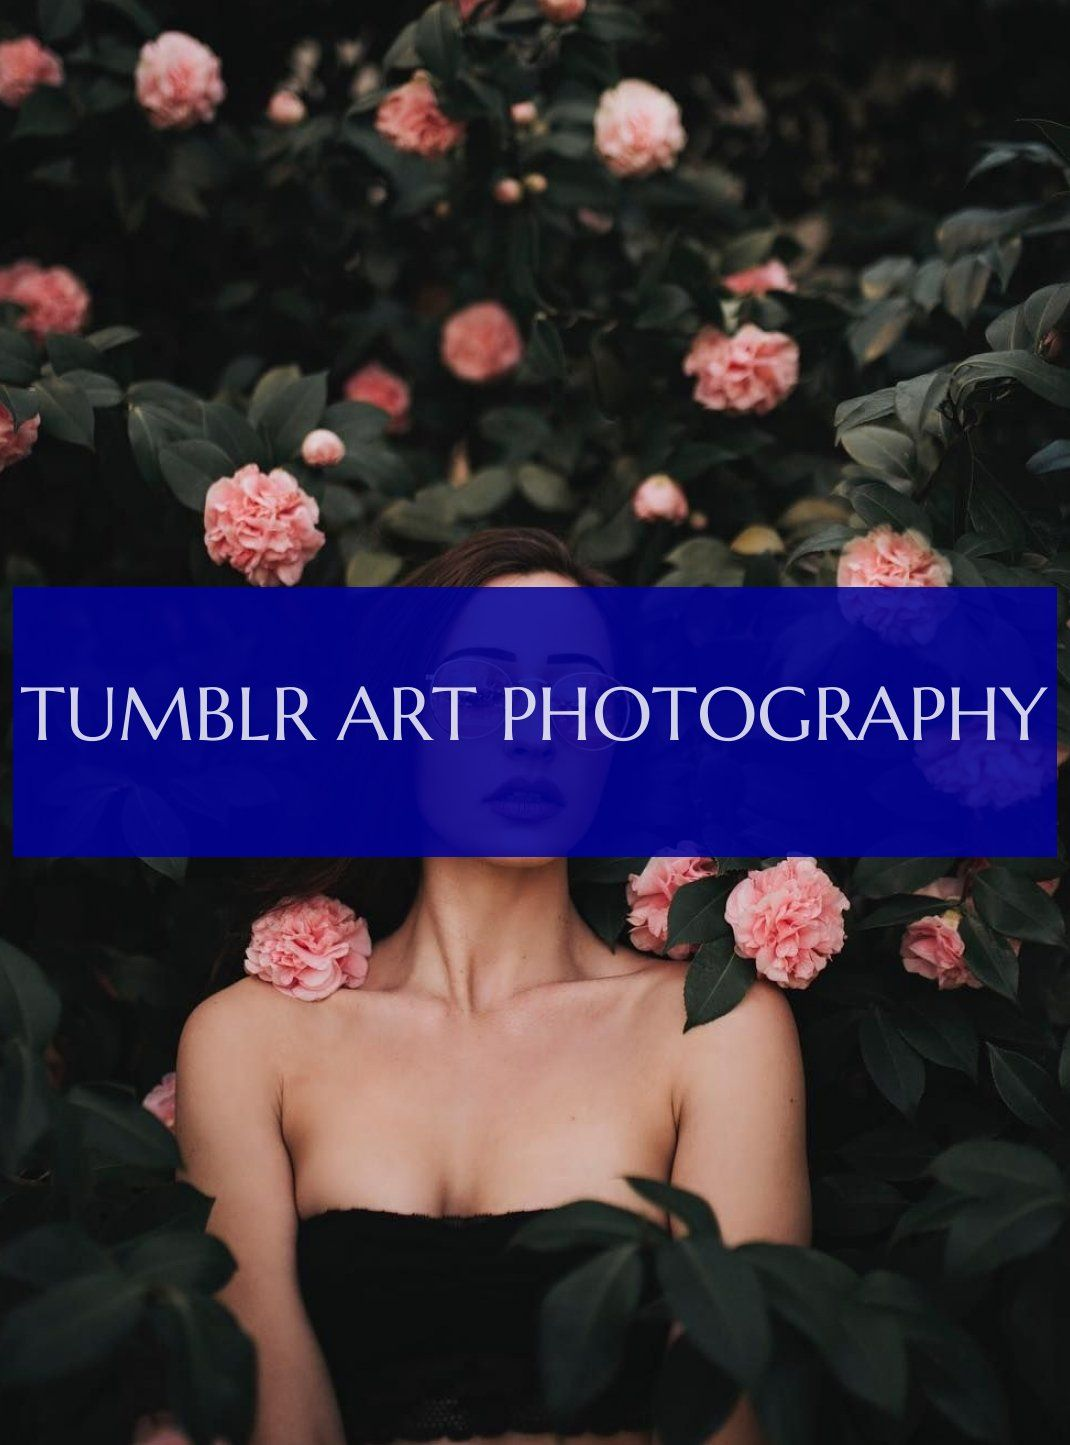 tumblr art photography